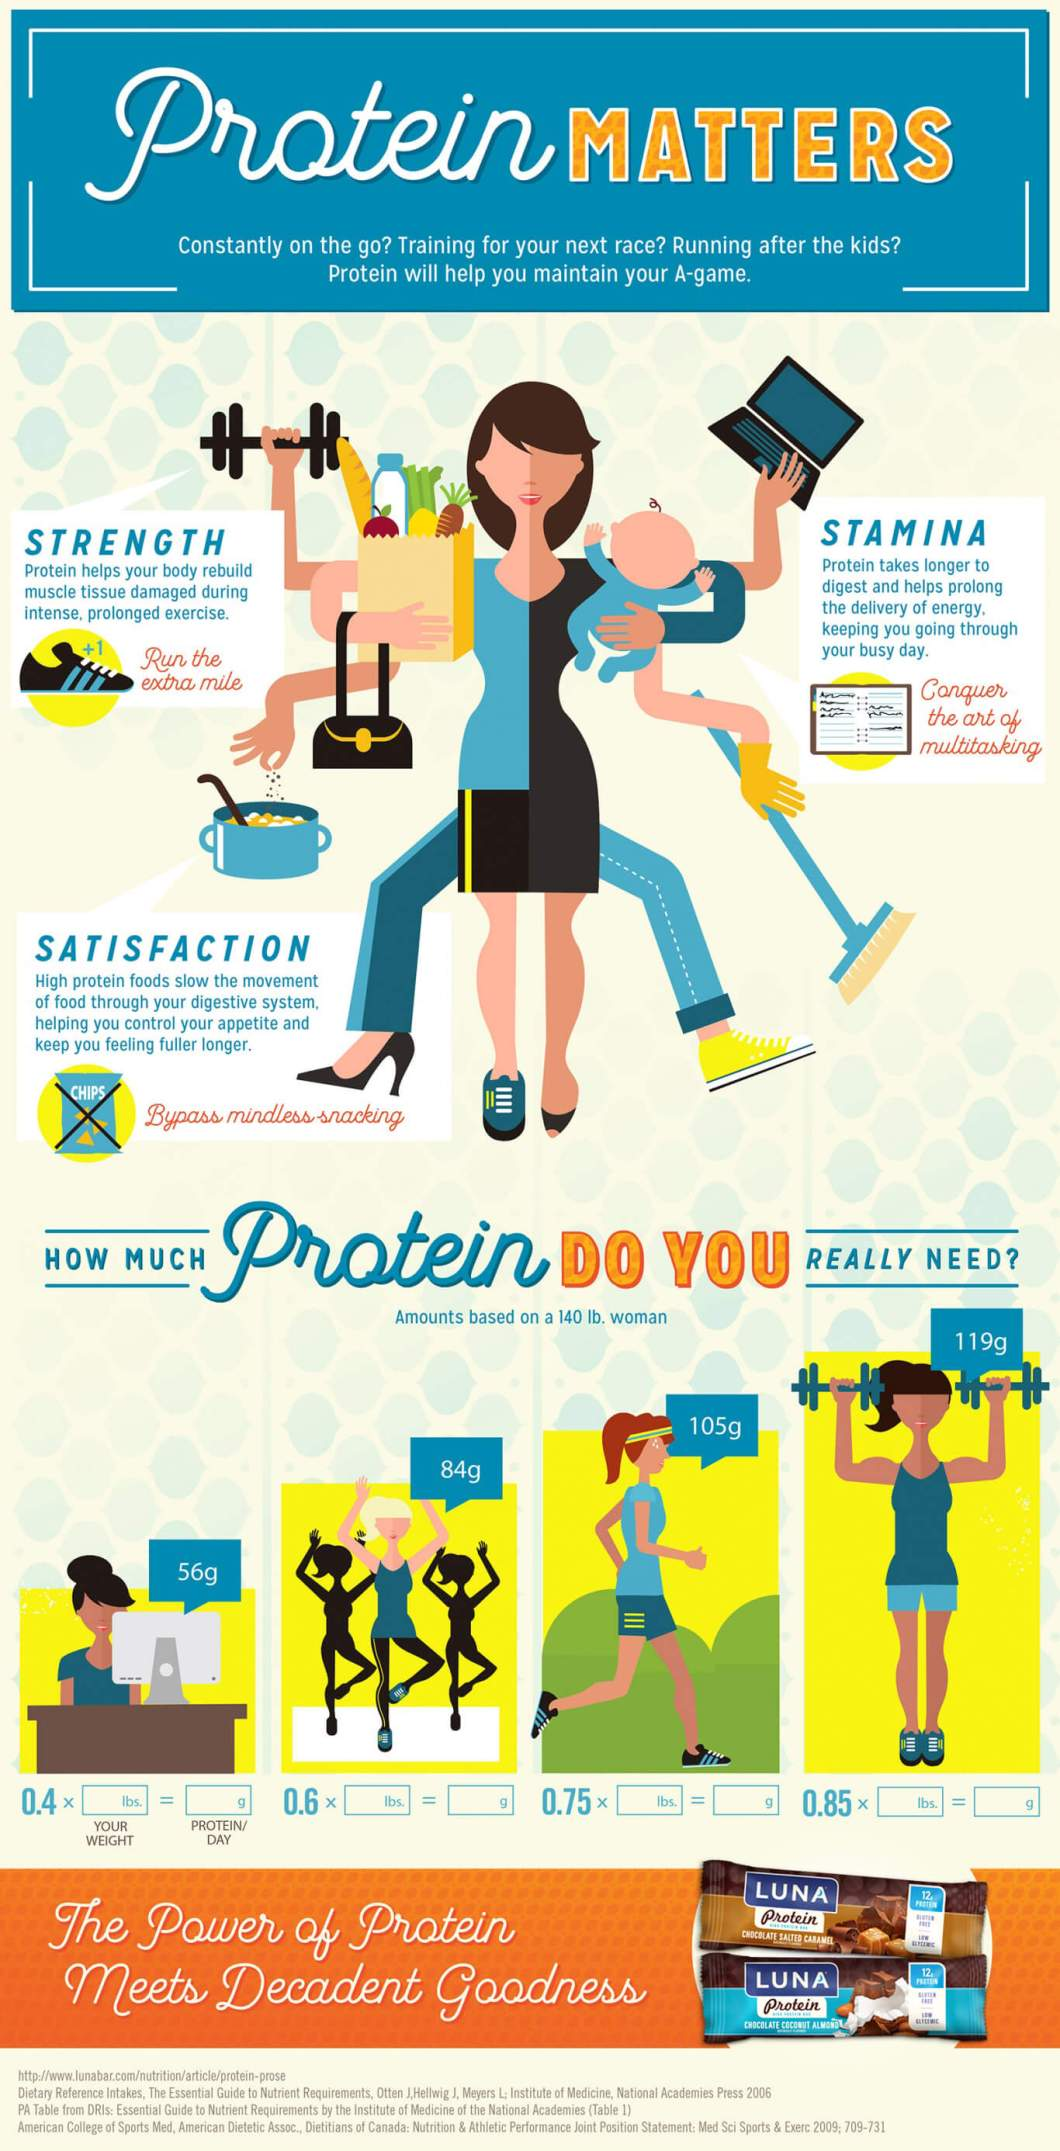 Protein Matters, But How Much? - Infographic